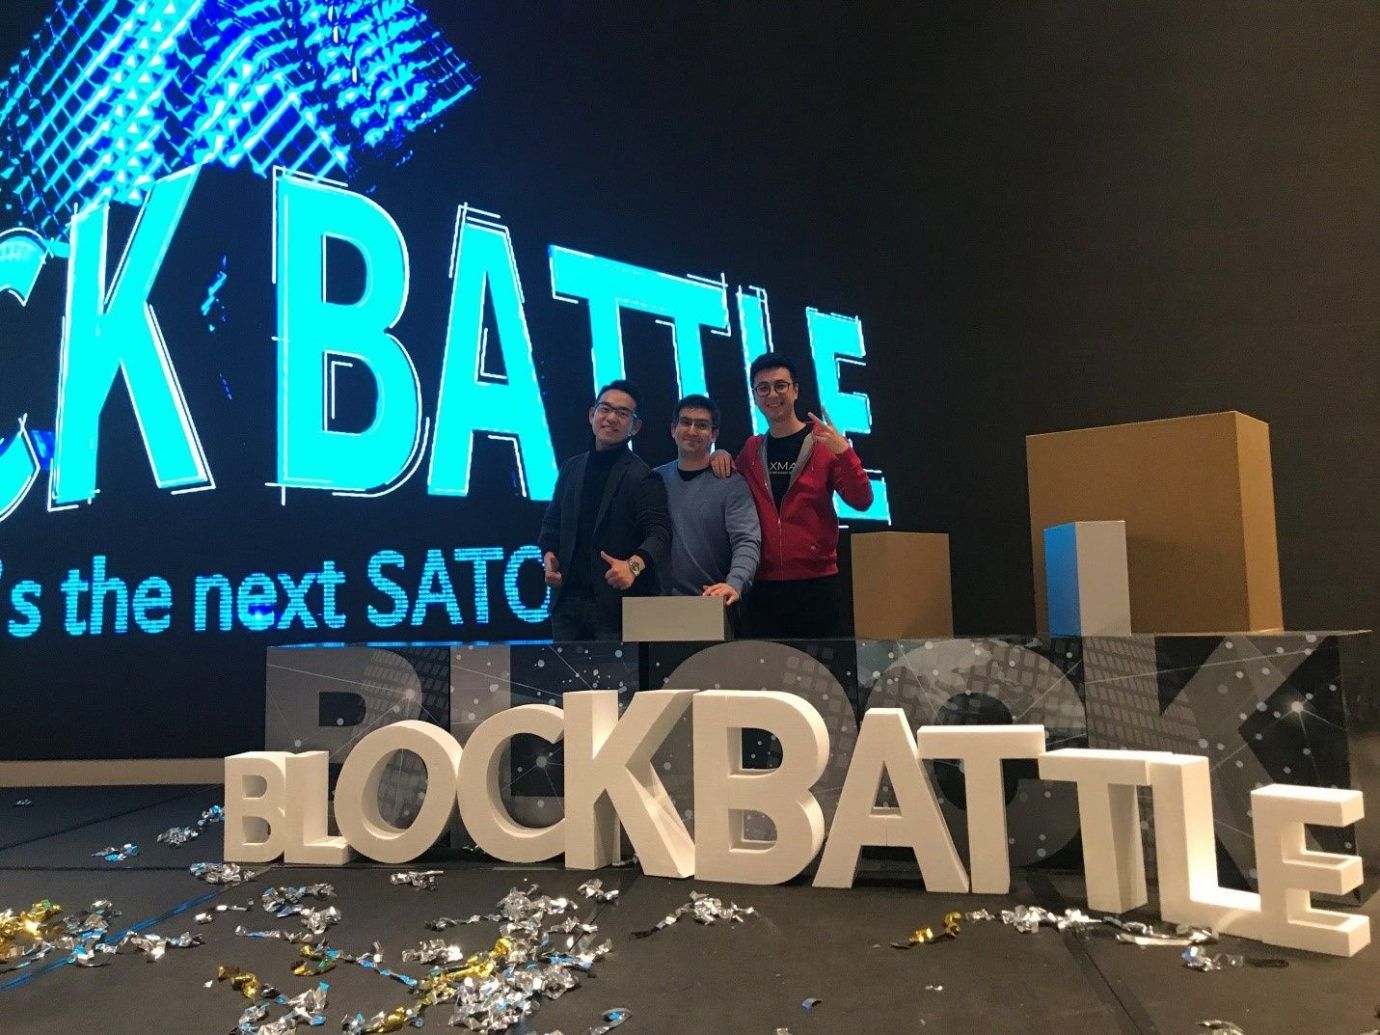 TV Show'Block Battle' Season 2 To Provide Winners An Investment Opportunity Up To $10 Million USD